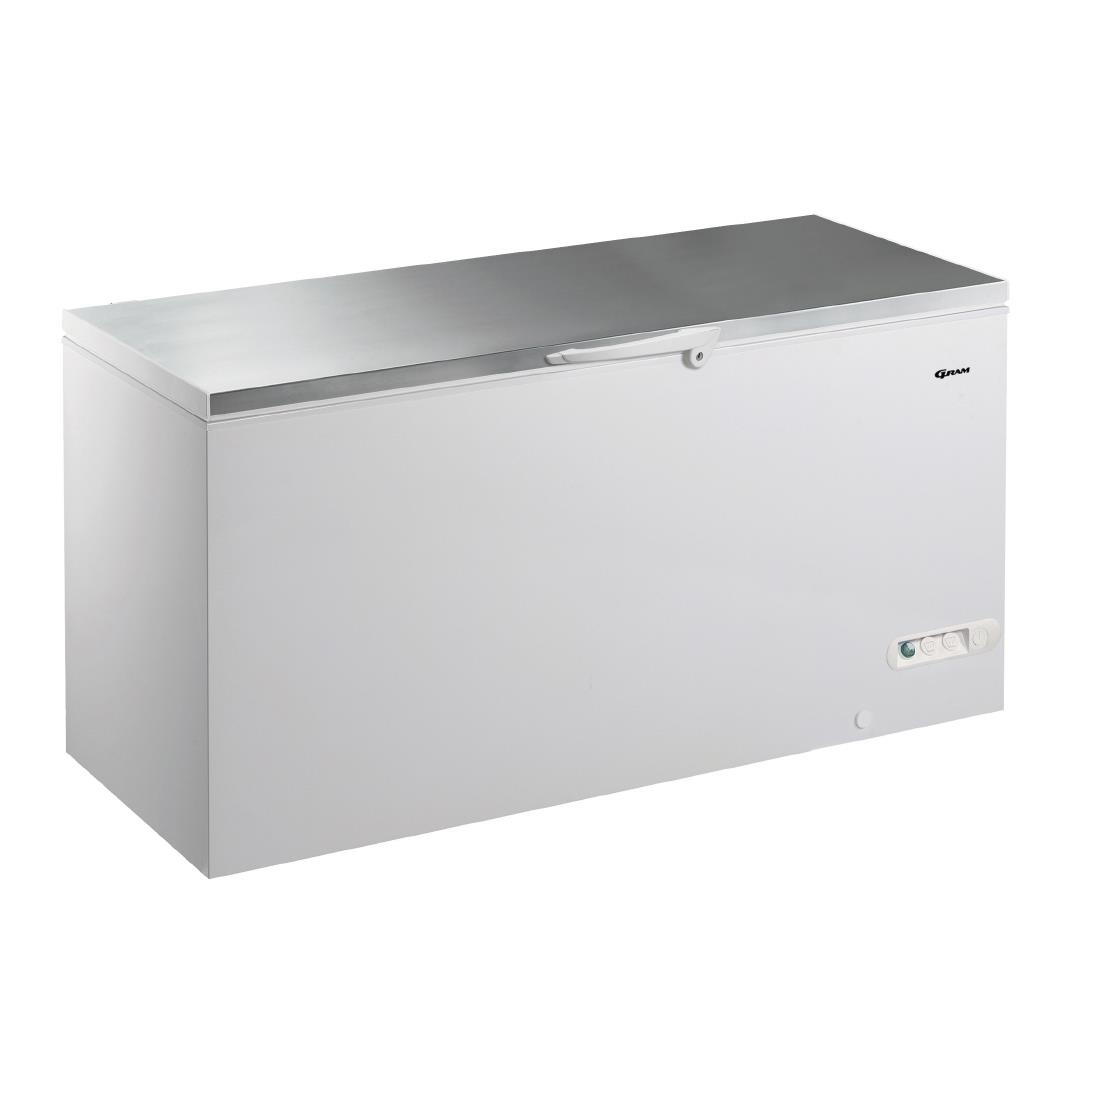 Gram CF 416Ltr Low Energy Chest Freezer CF 51S XLE